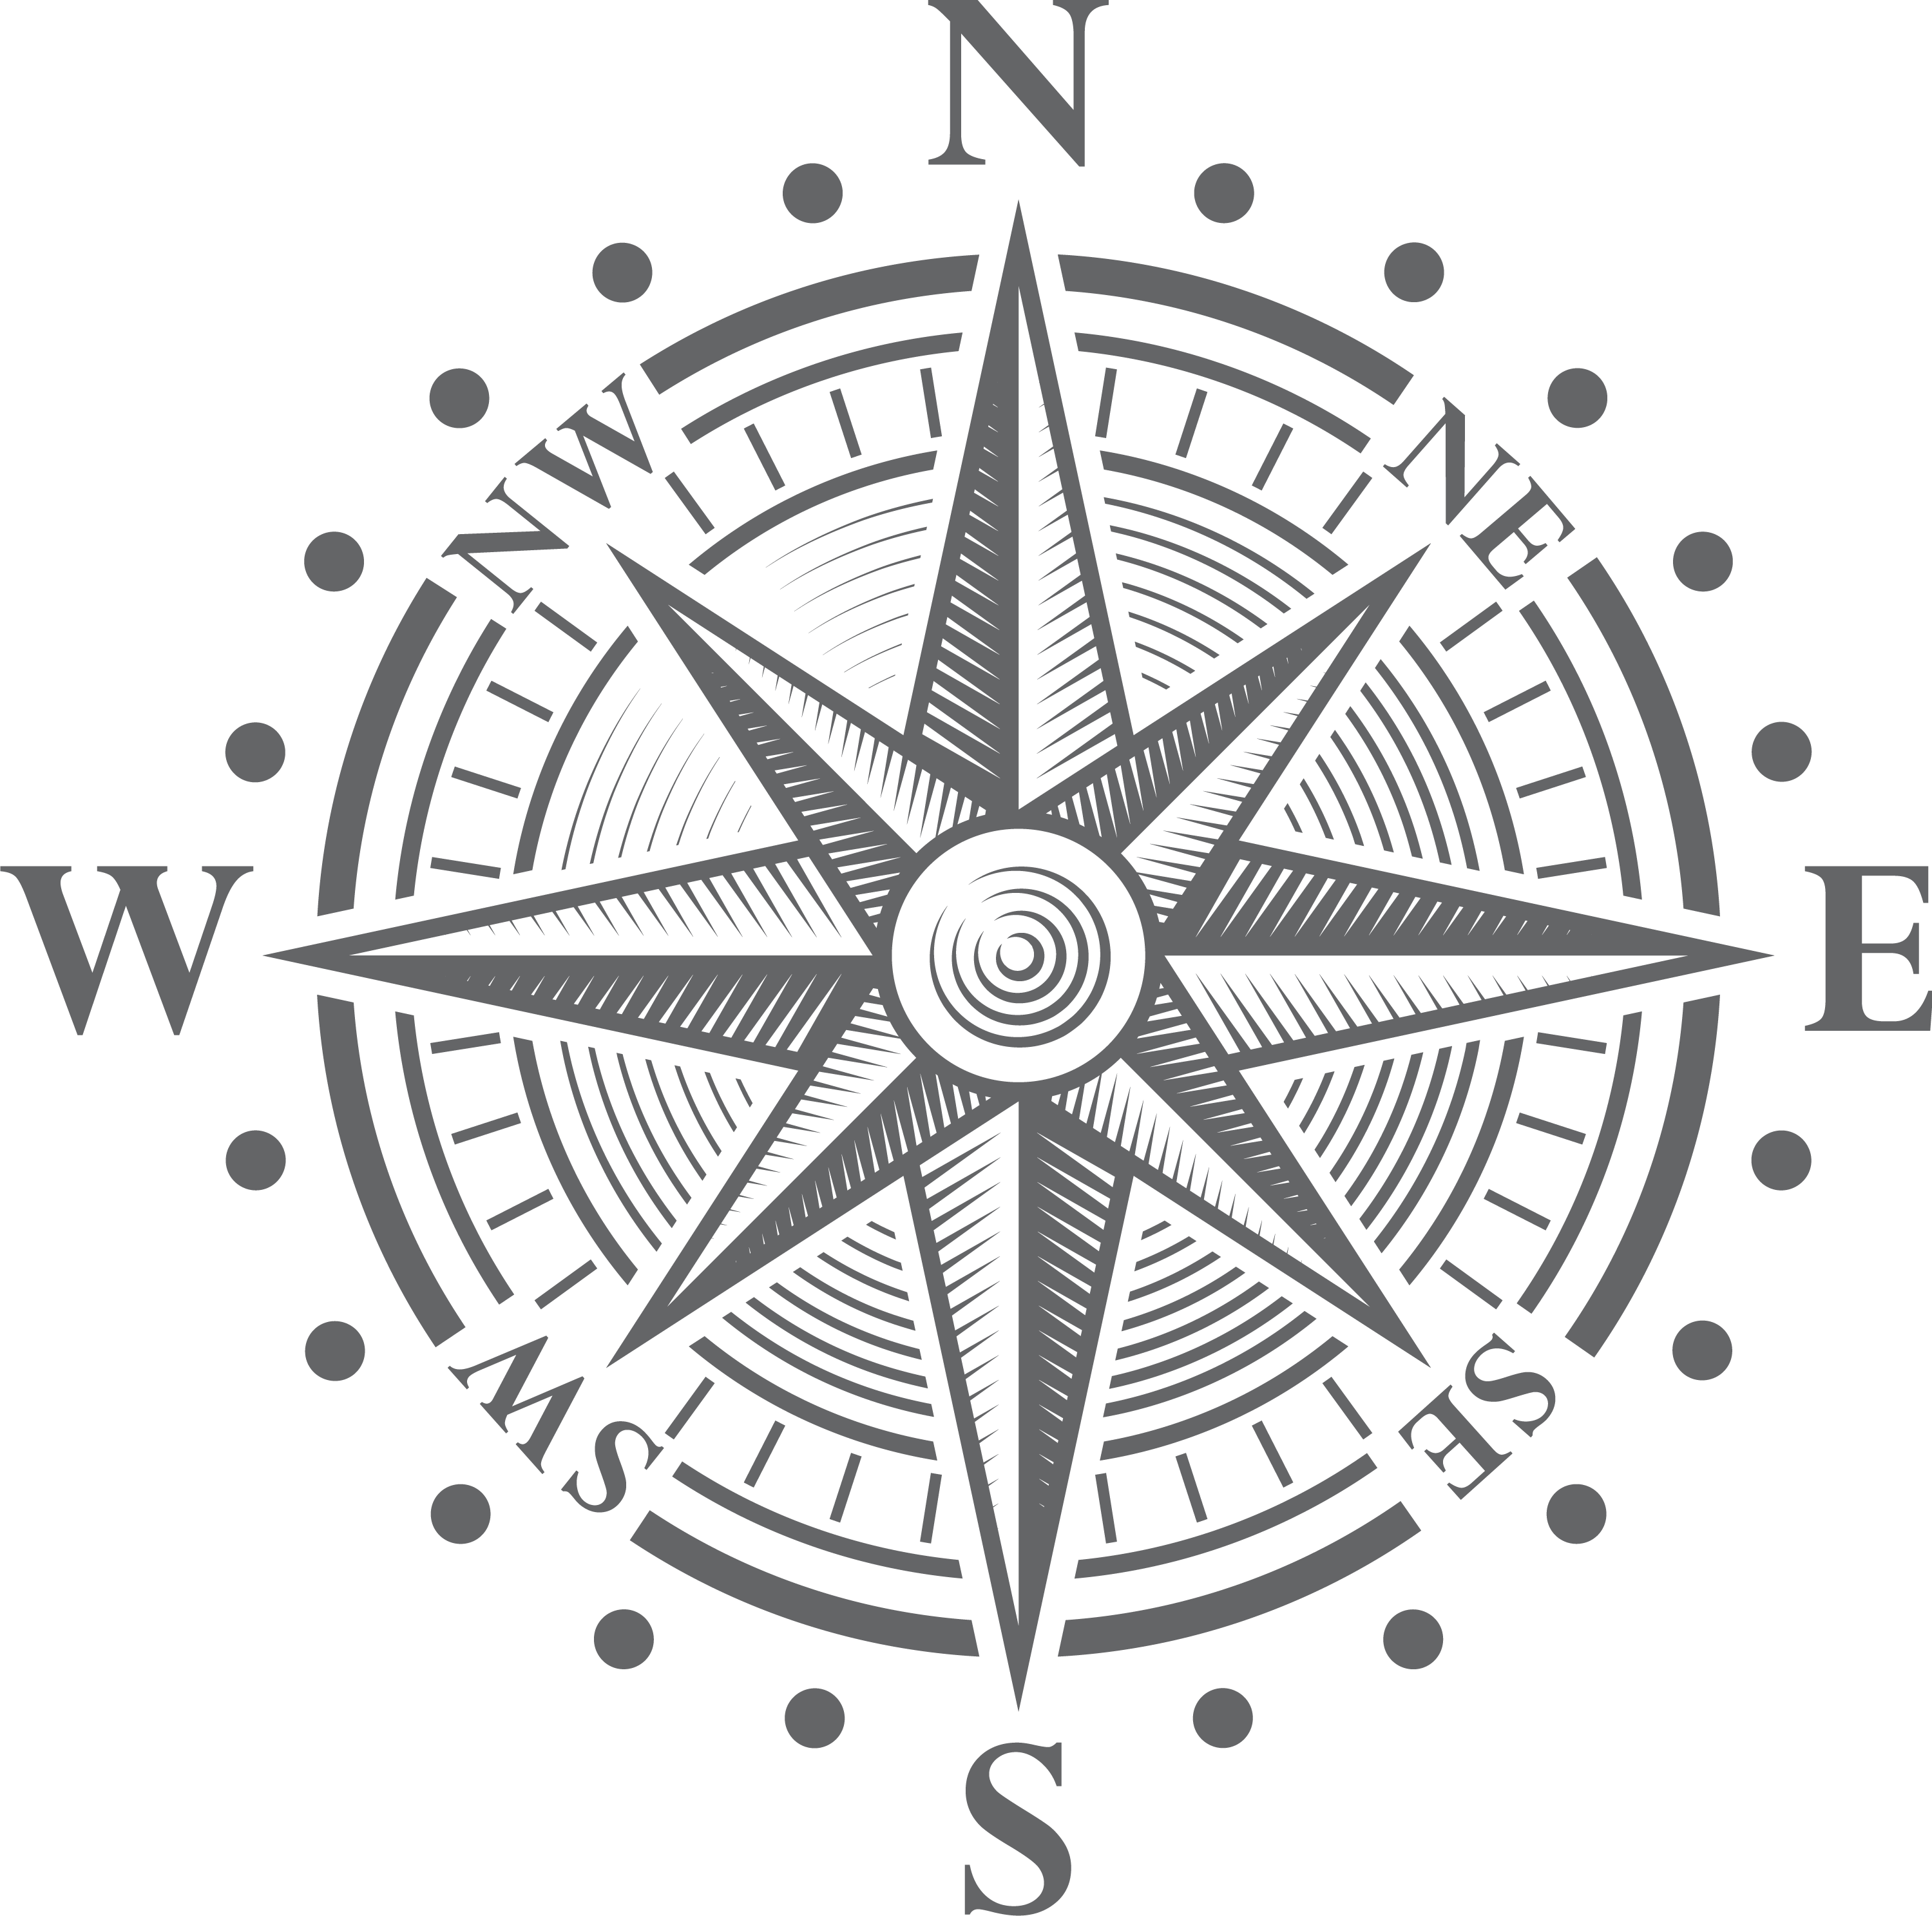 Image of a compass rose.